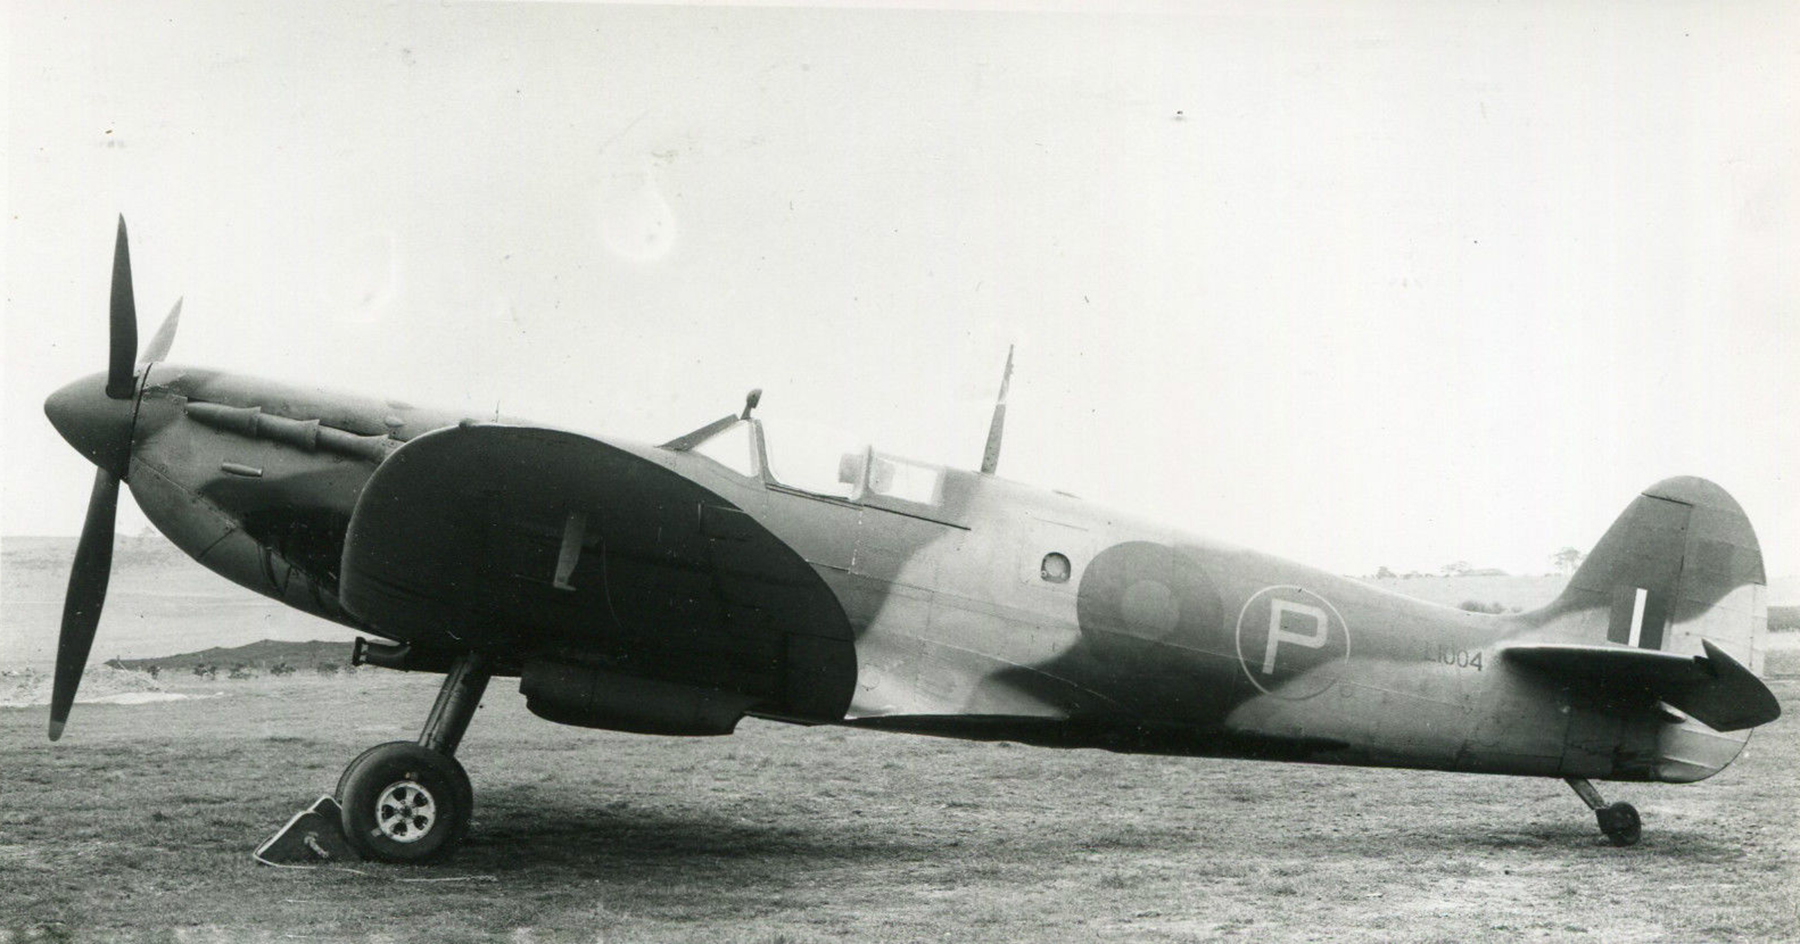 Spitfire PR8 Proyotype climb level speed and diving trials L1004 Mar 1943 01